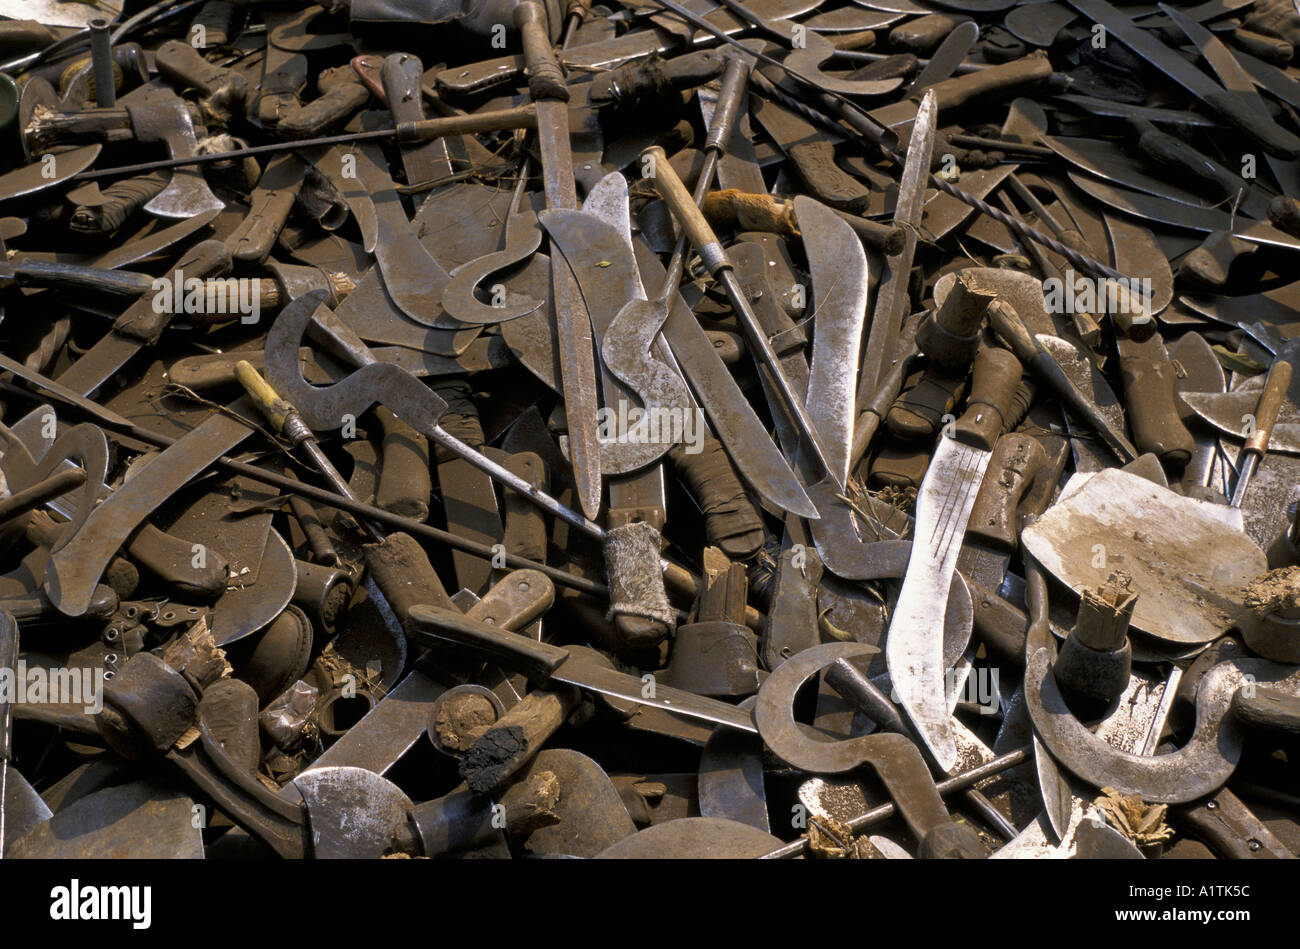 GOMA ZAIRE MACHETES used in the genocide COLLECTED AT THE ZAIRE RWANDA BORDER JULY 1994 - Stock Image